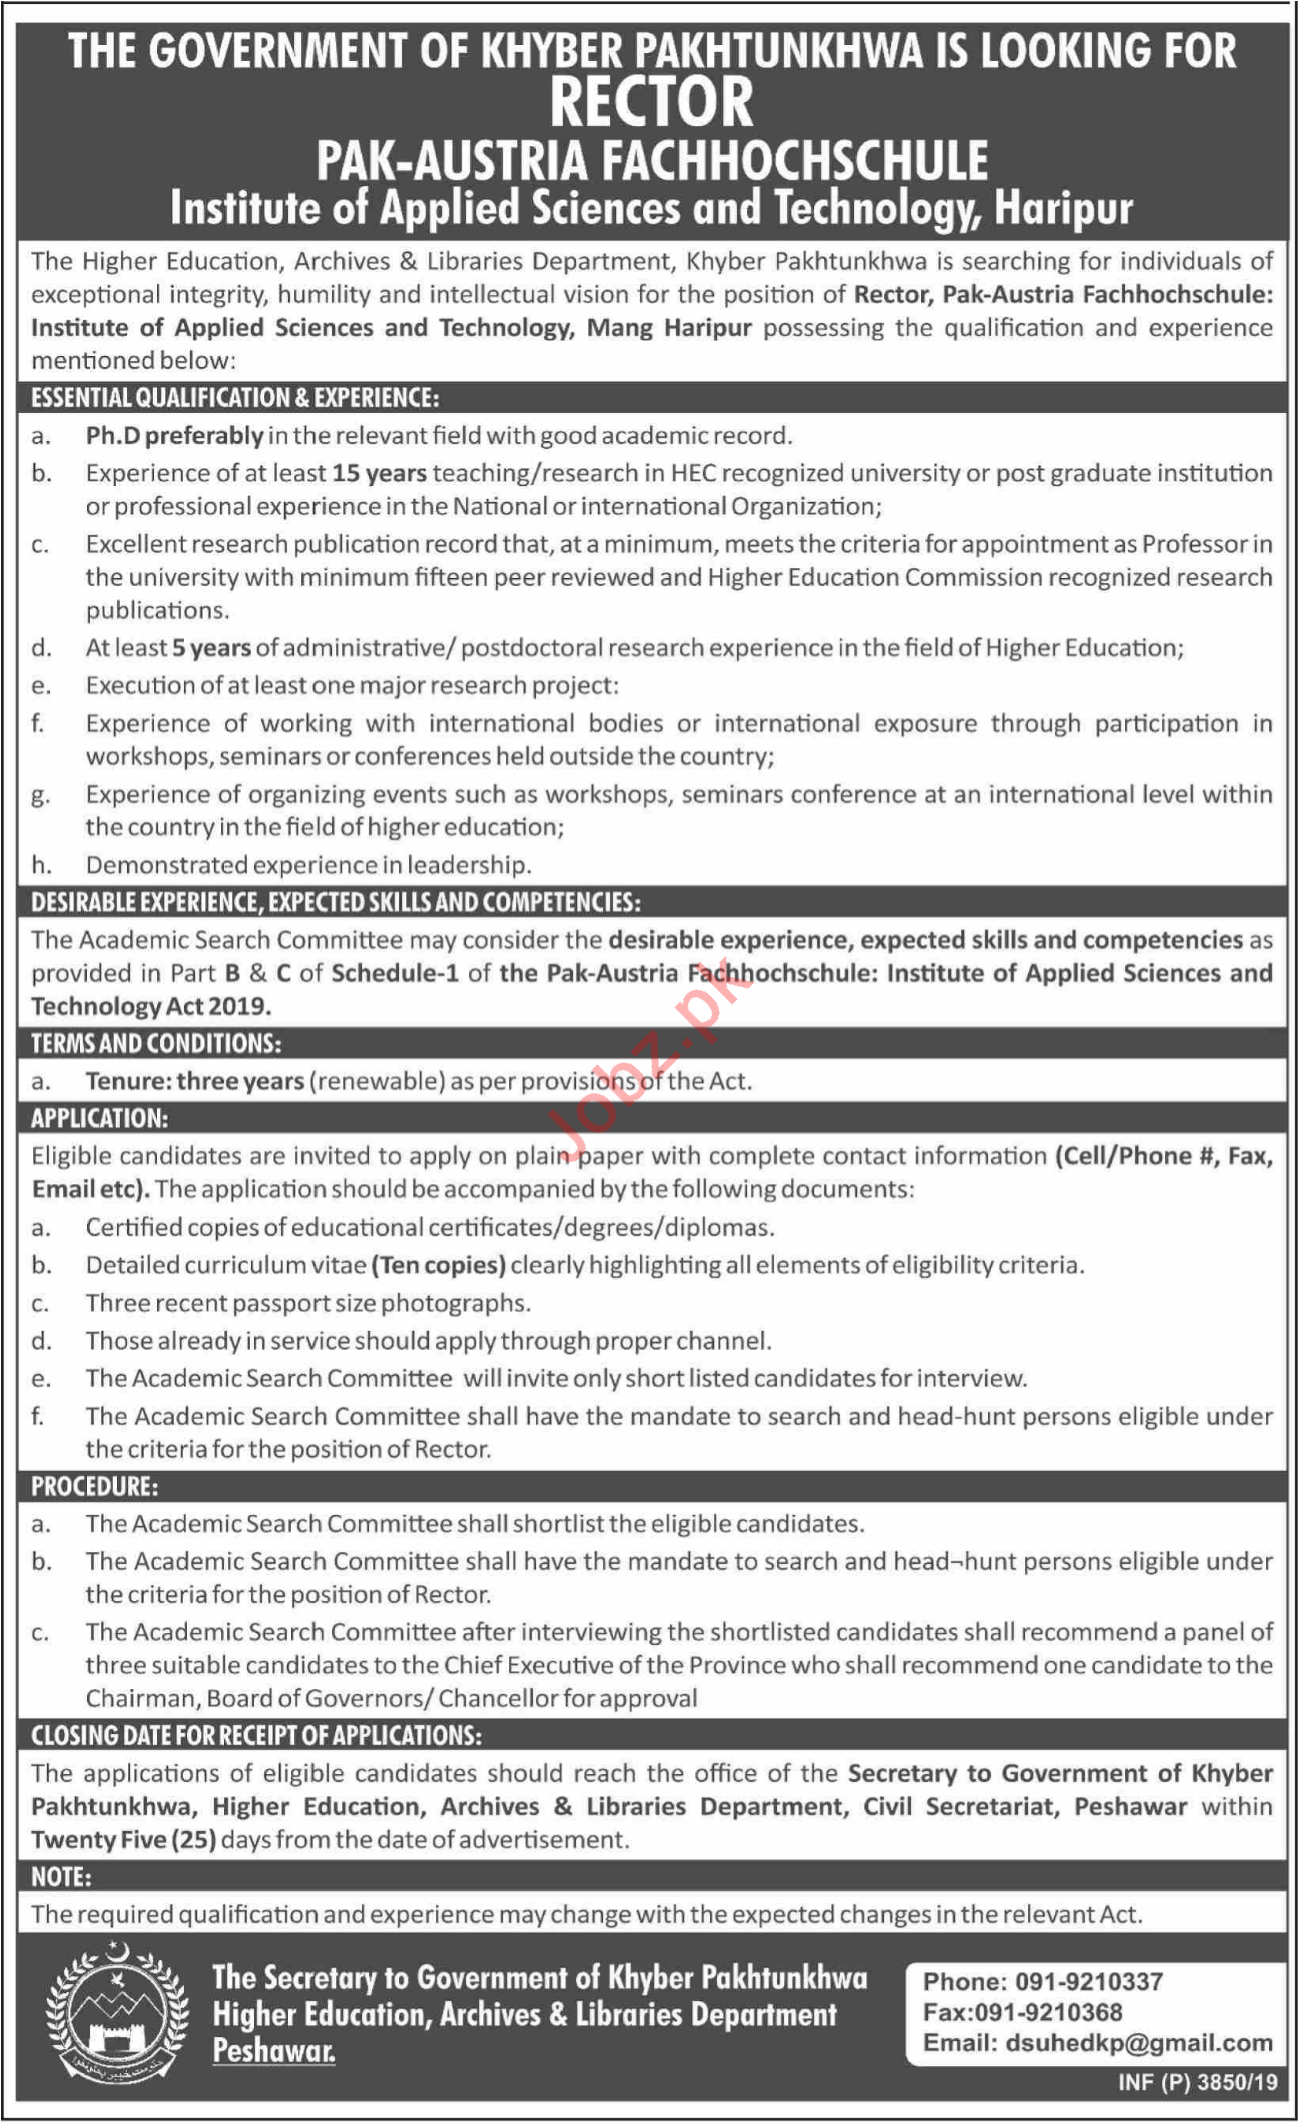 Institute of Applied Sciences And Technology Jobs 2019 Job